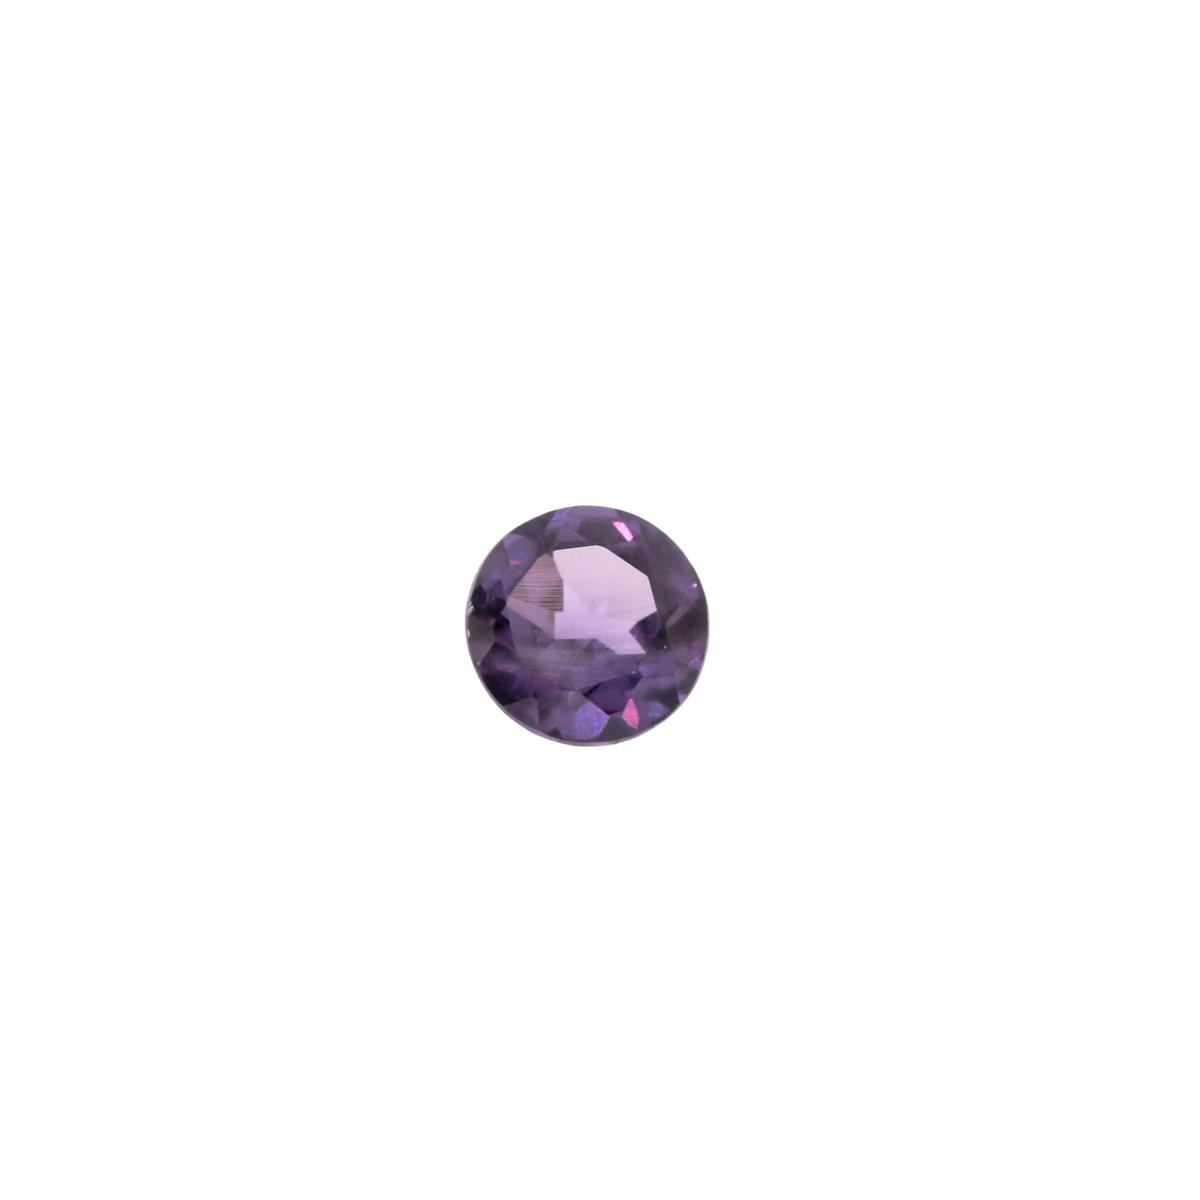 Synthetic Alexandrite 6.75mm